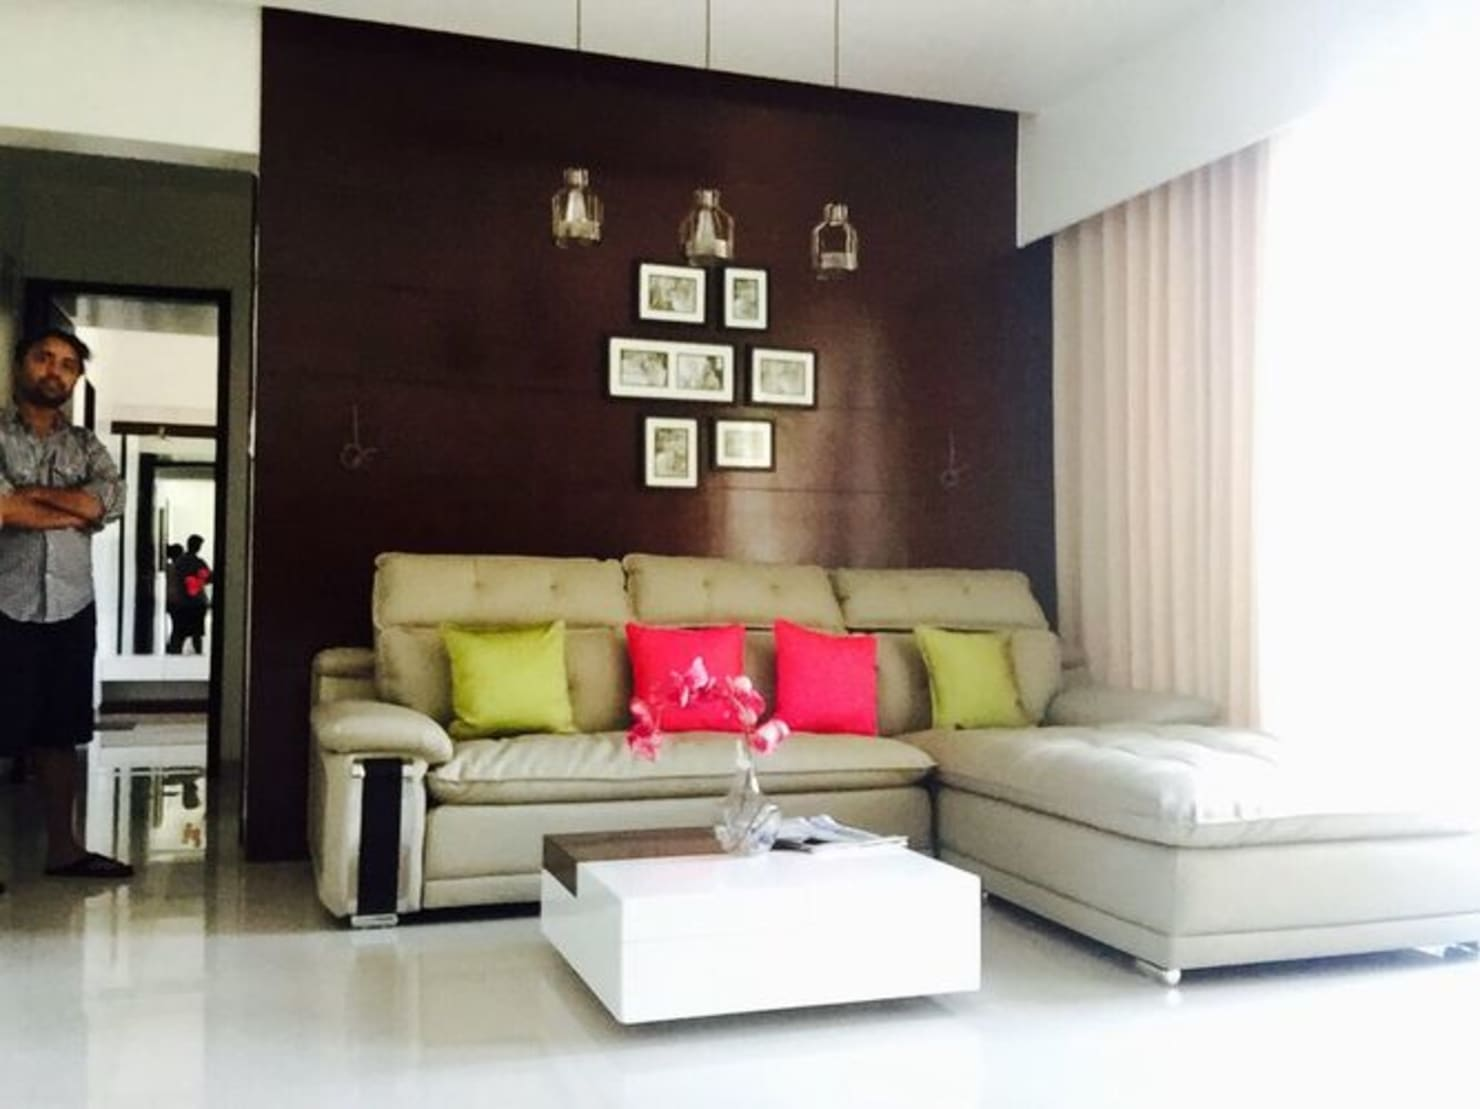 Modern home decor ideas from interior designers in Pune